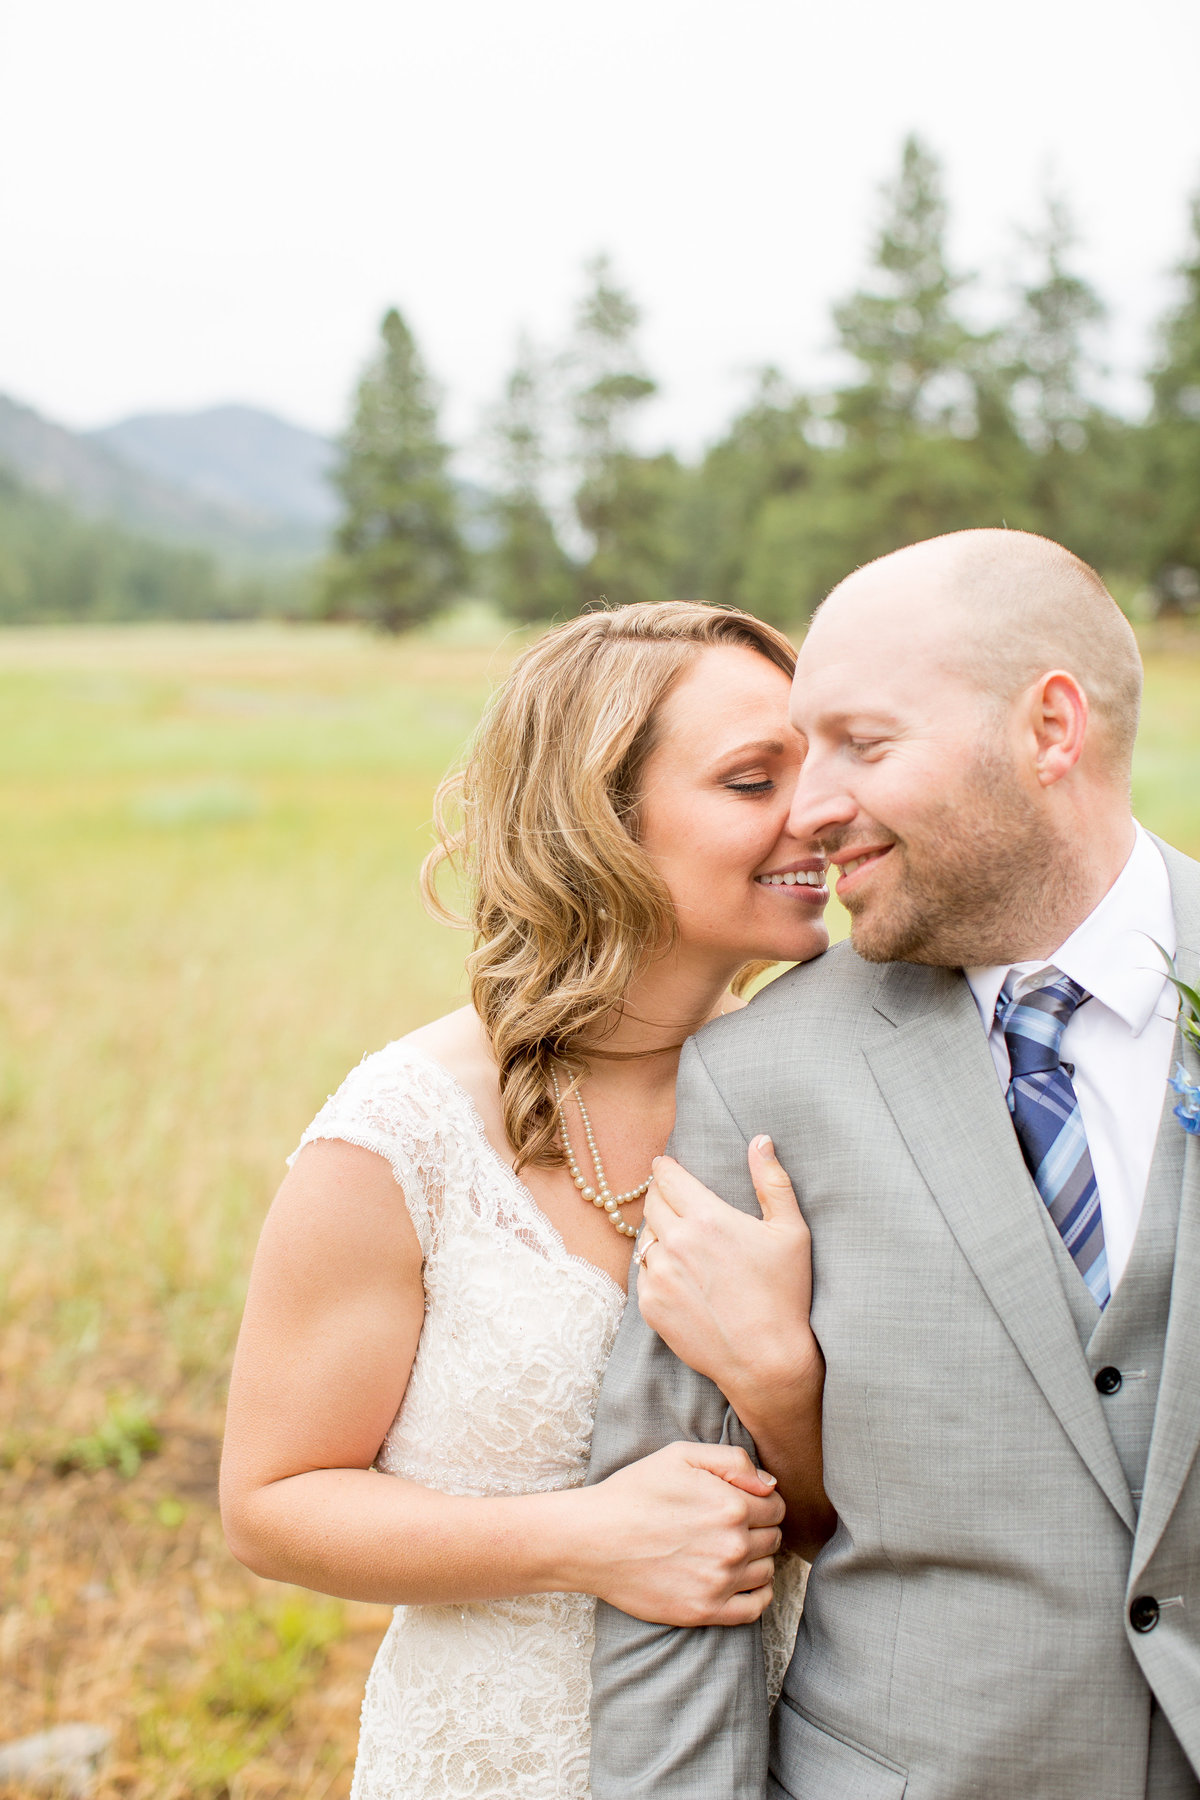 Jon + Emilee | Lifesong Photography | Whitworth University Destination Wedding (159 of 254)